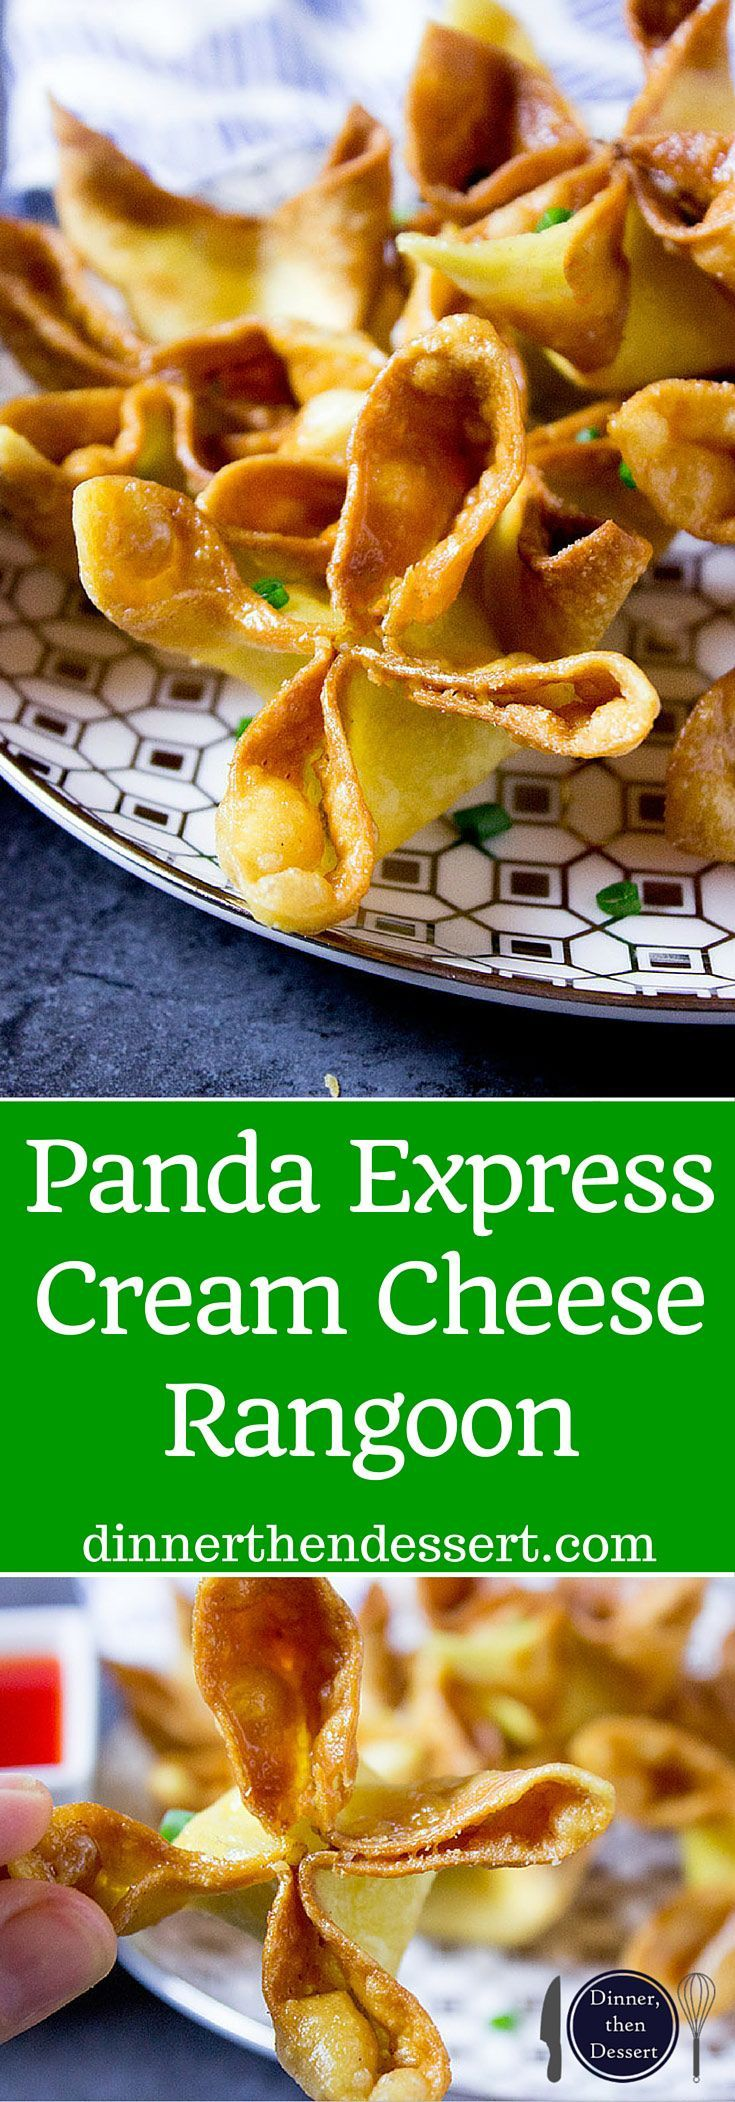 Panda Express Cream Cheese Rangoon made with a creamy center and crispy exterior, these are the perfect appetizer for your next Chinese takeout meal. You can make ahead and freeze for later too.